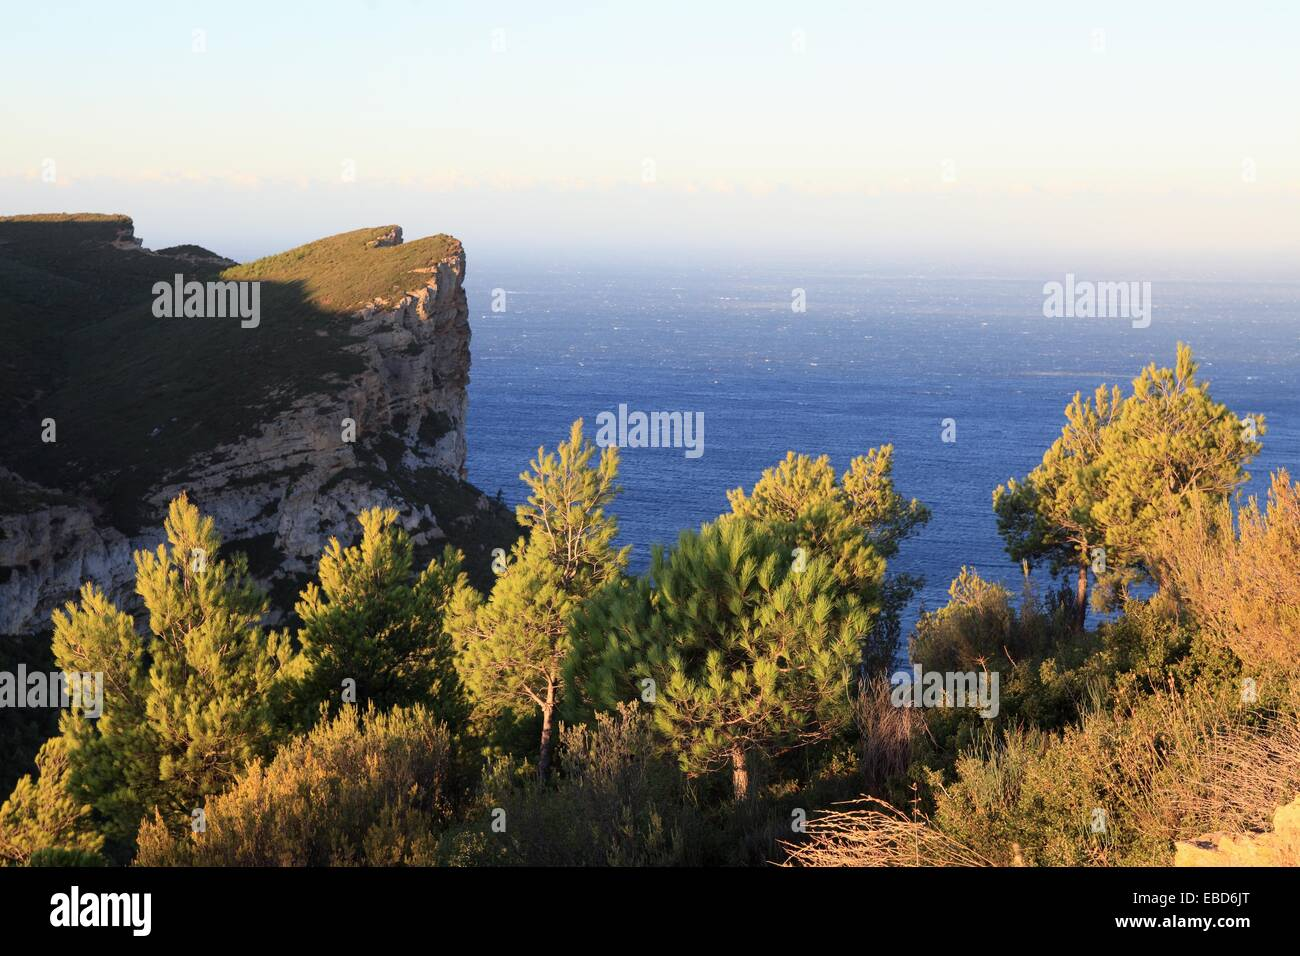 around body of water Bouches du Rhône call canopy Cassis Charlemagne cliff coast coastal color image couronne - Stock Image